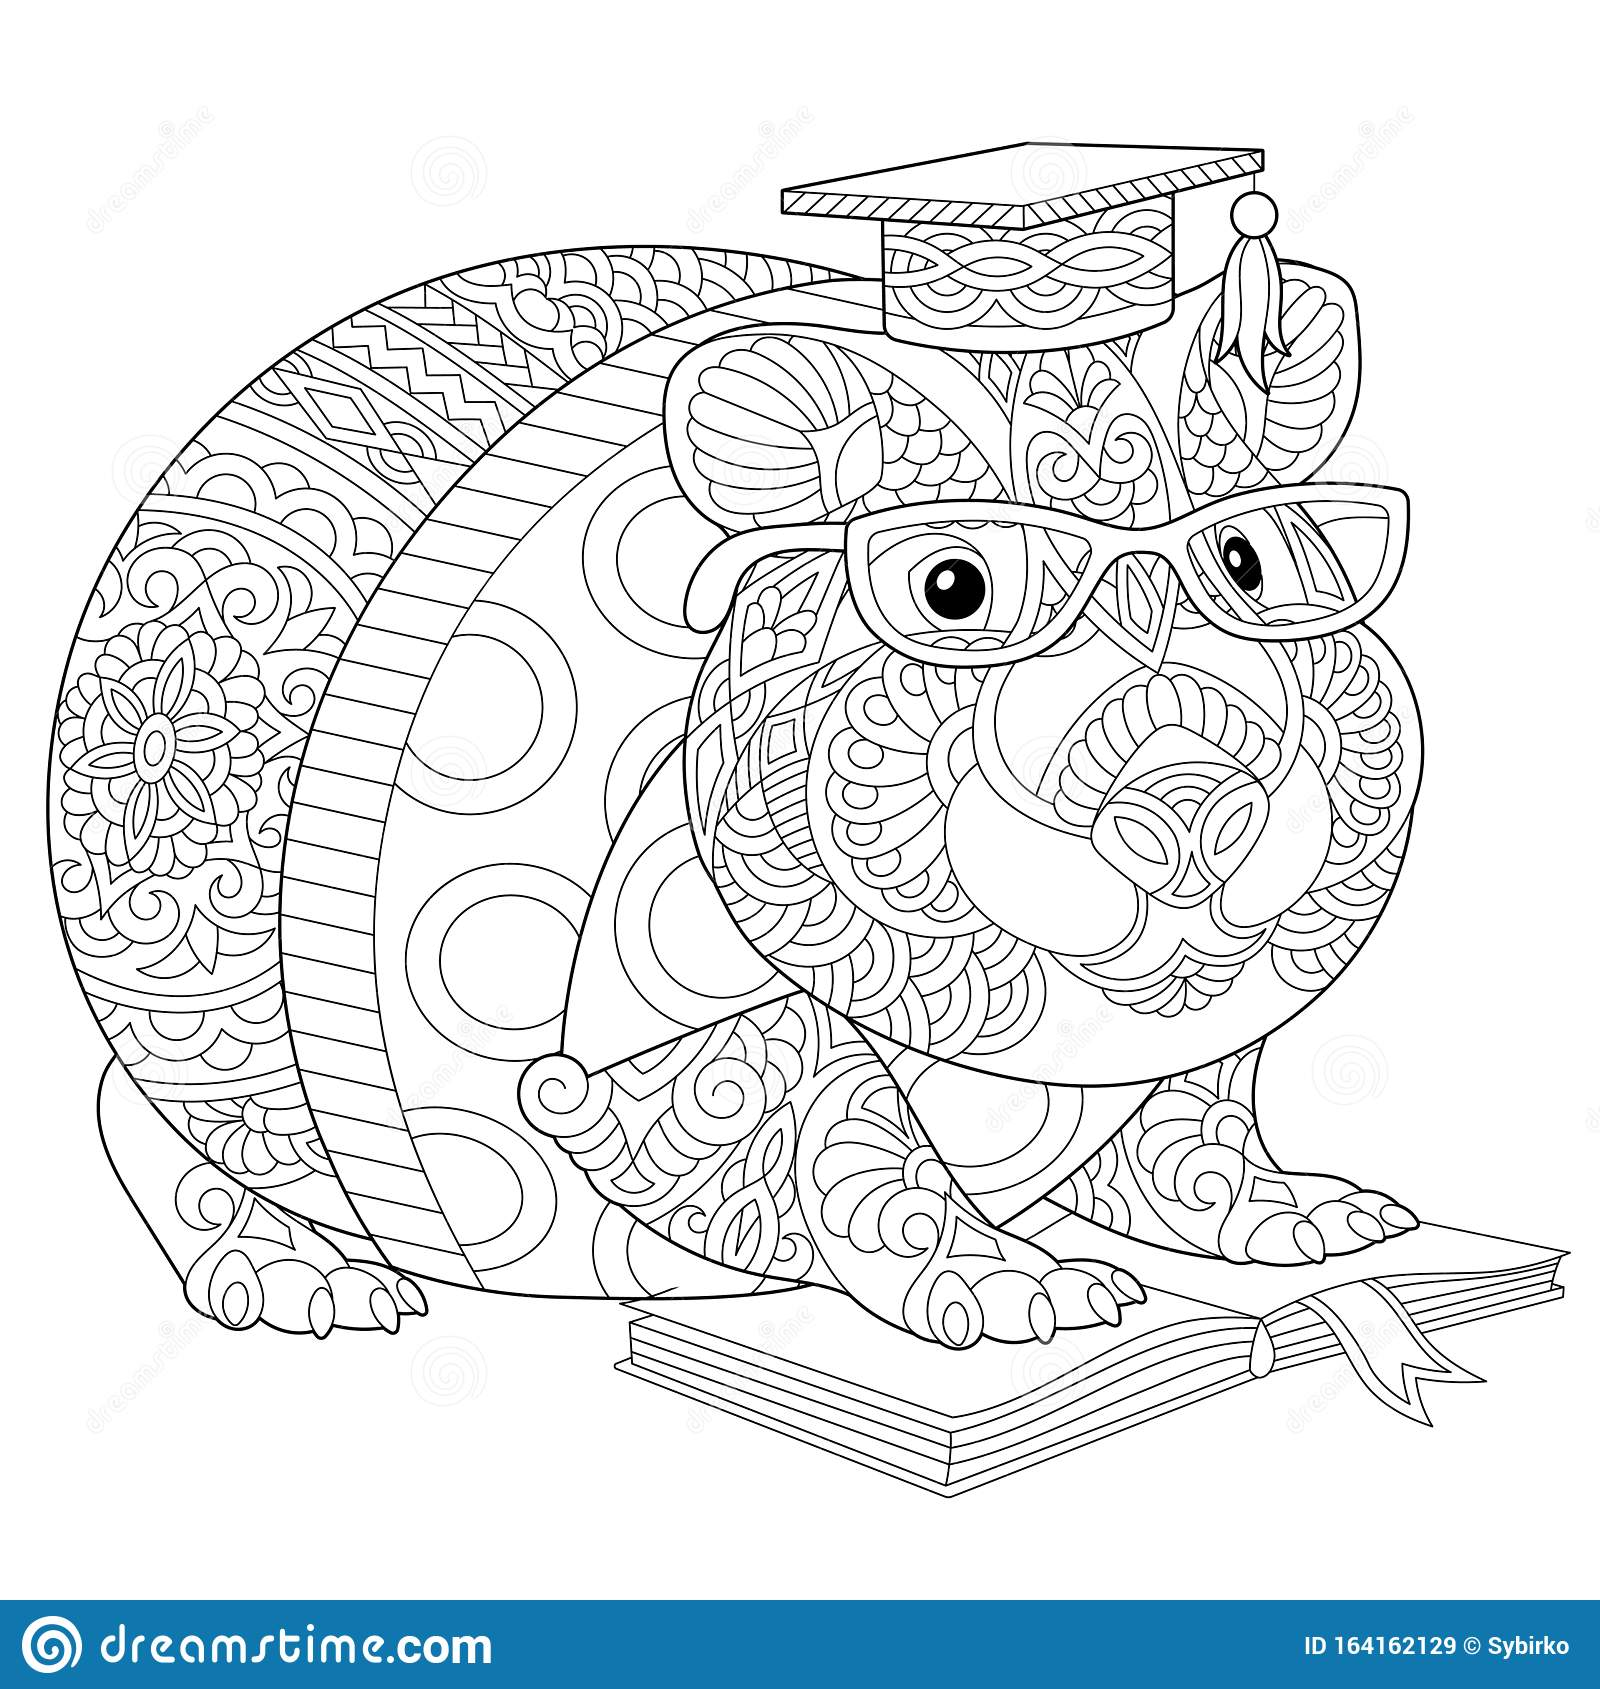 Zentangle Hamster Or Guinea Pig Coloring Page Stock Vector Illustration Of Hamster Cartoon 164162129